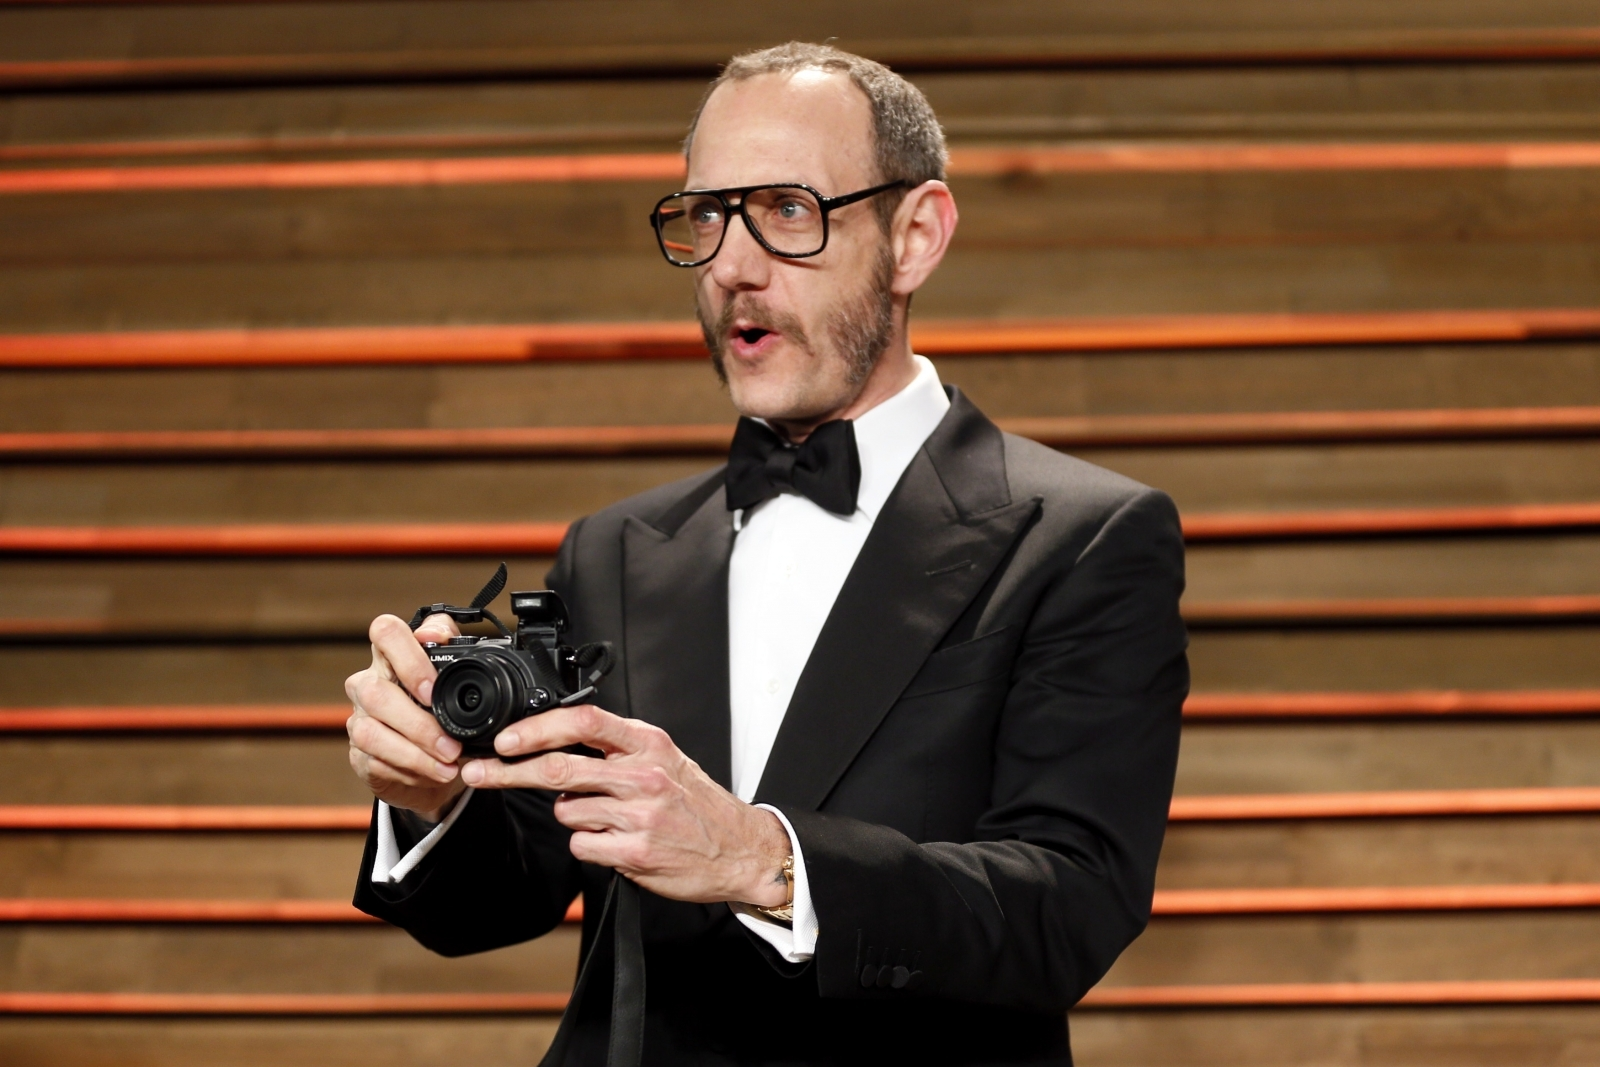 Who is Terry Richardson? Infamous Celeb Photographer Has Faced Sex Misconduct Allegations